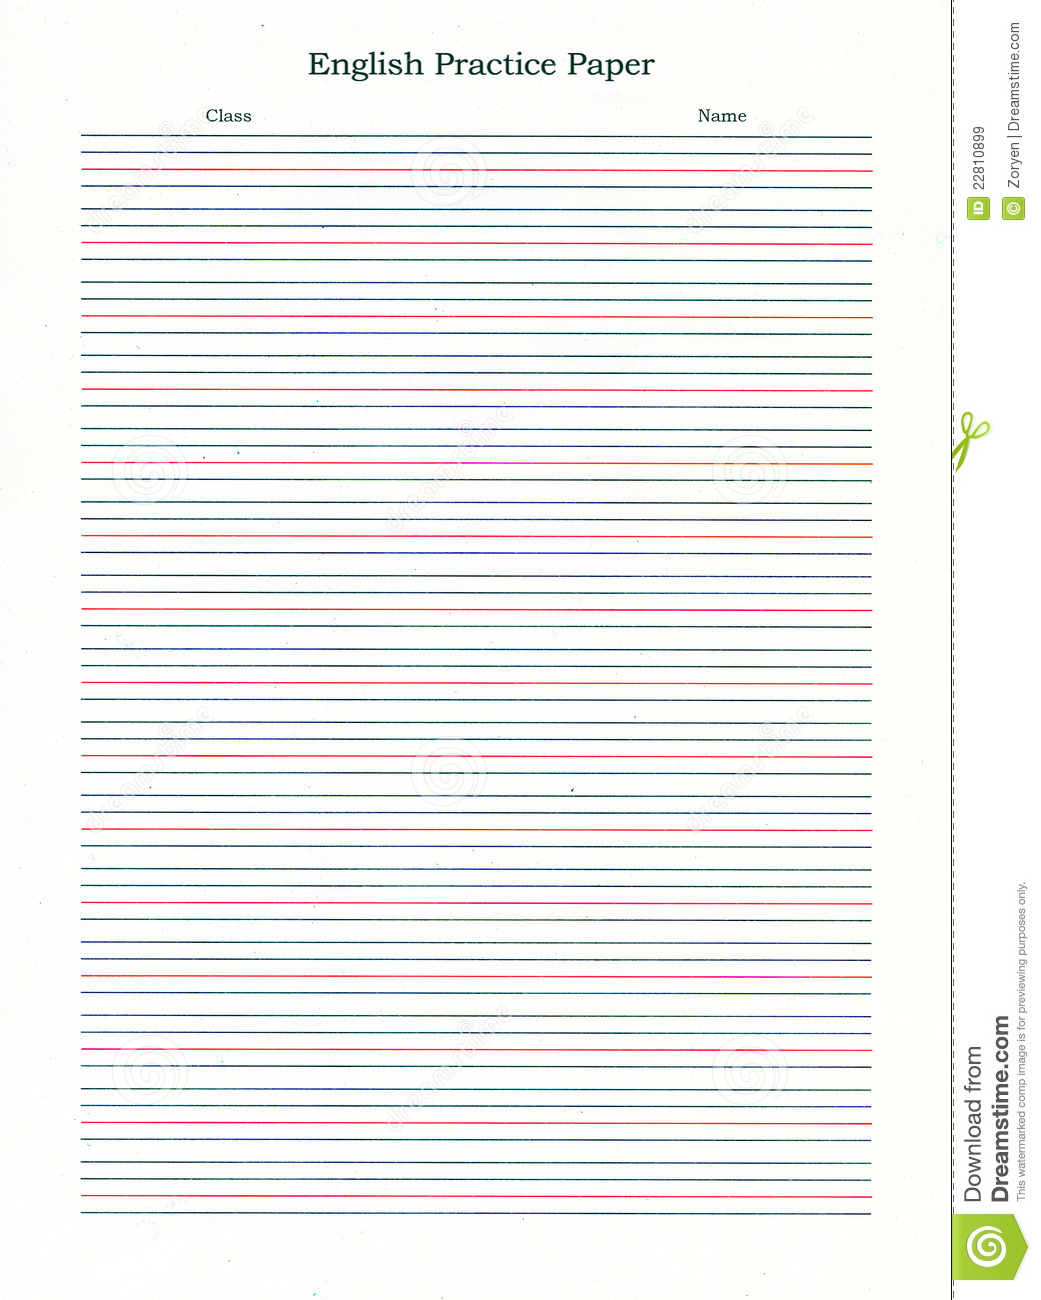 Ruled Writing Paper Stock Image Image Of Guide Ruled